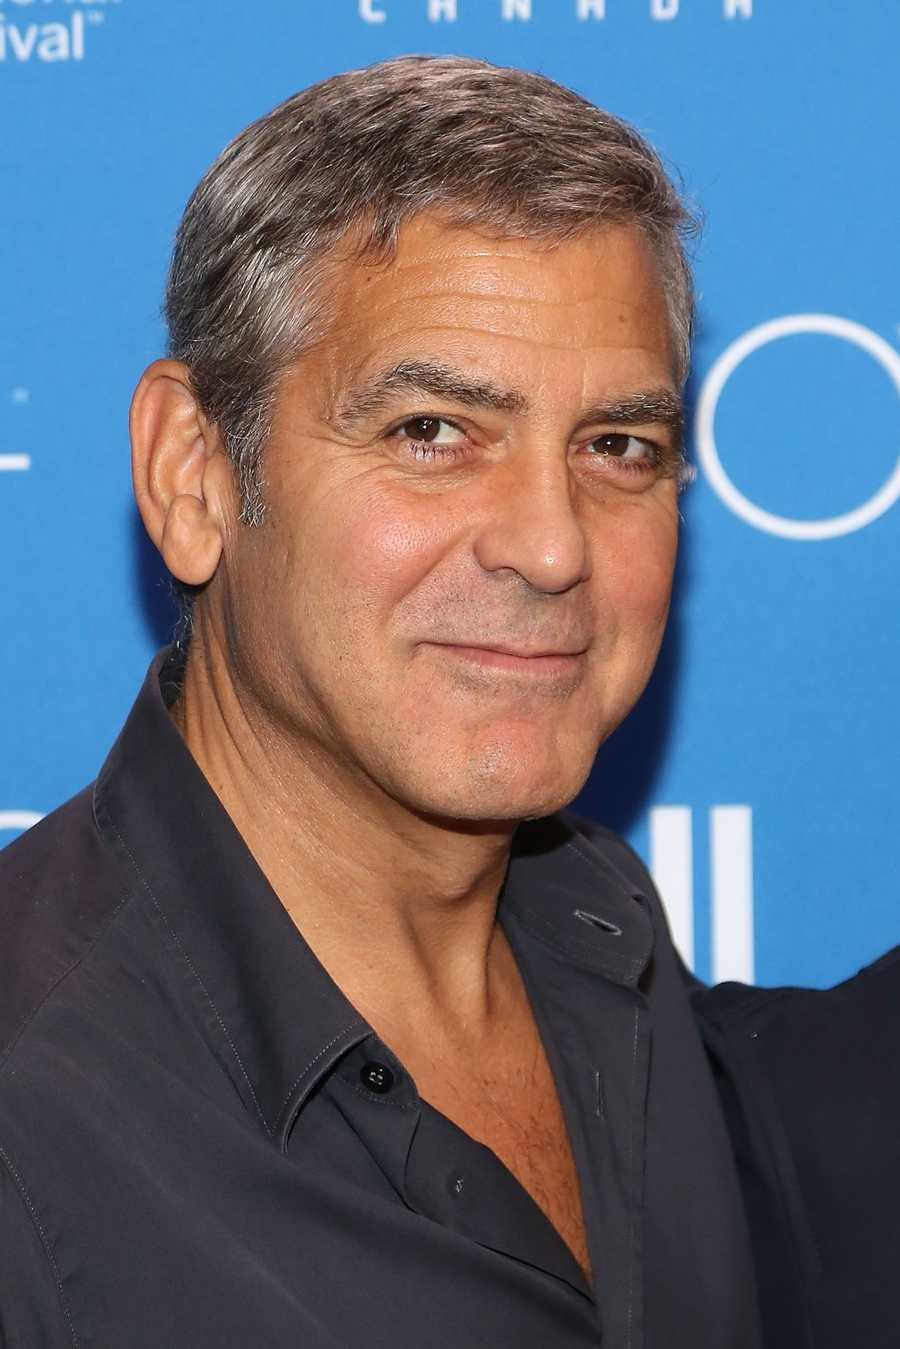 NOW: George ClooneyWe all know what this classic crush is up to these days: still breaking hearts and taking names. (And persuading other guys to dye their hair gray.)